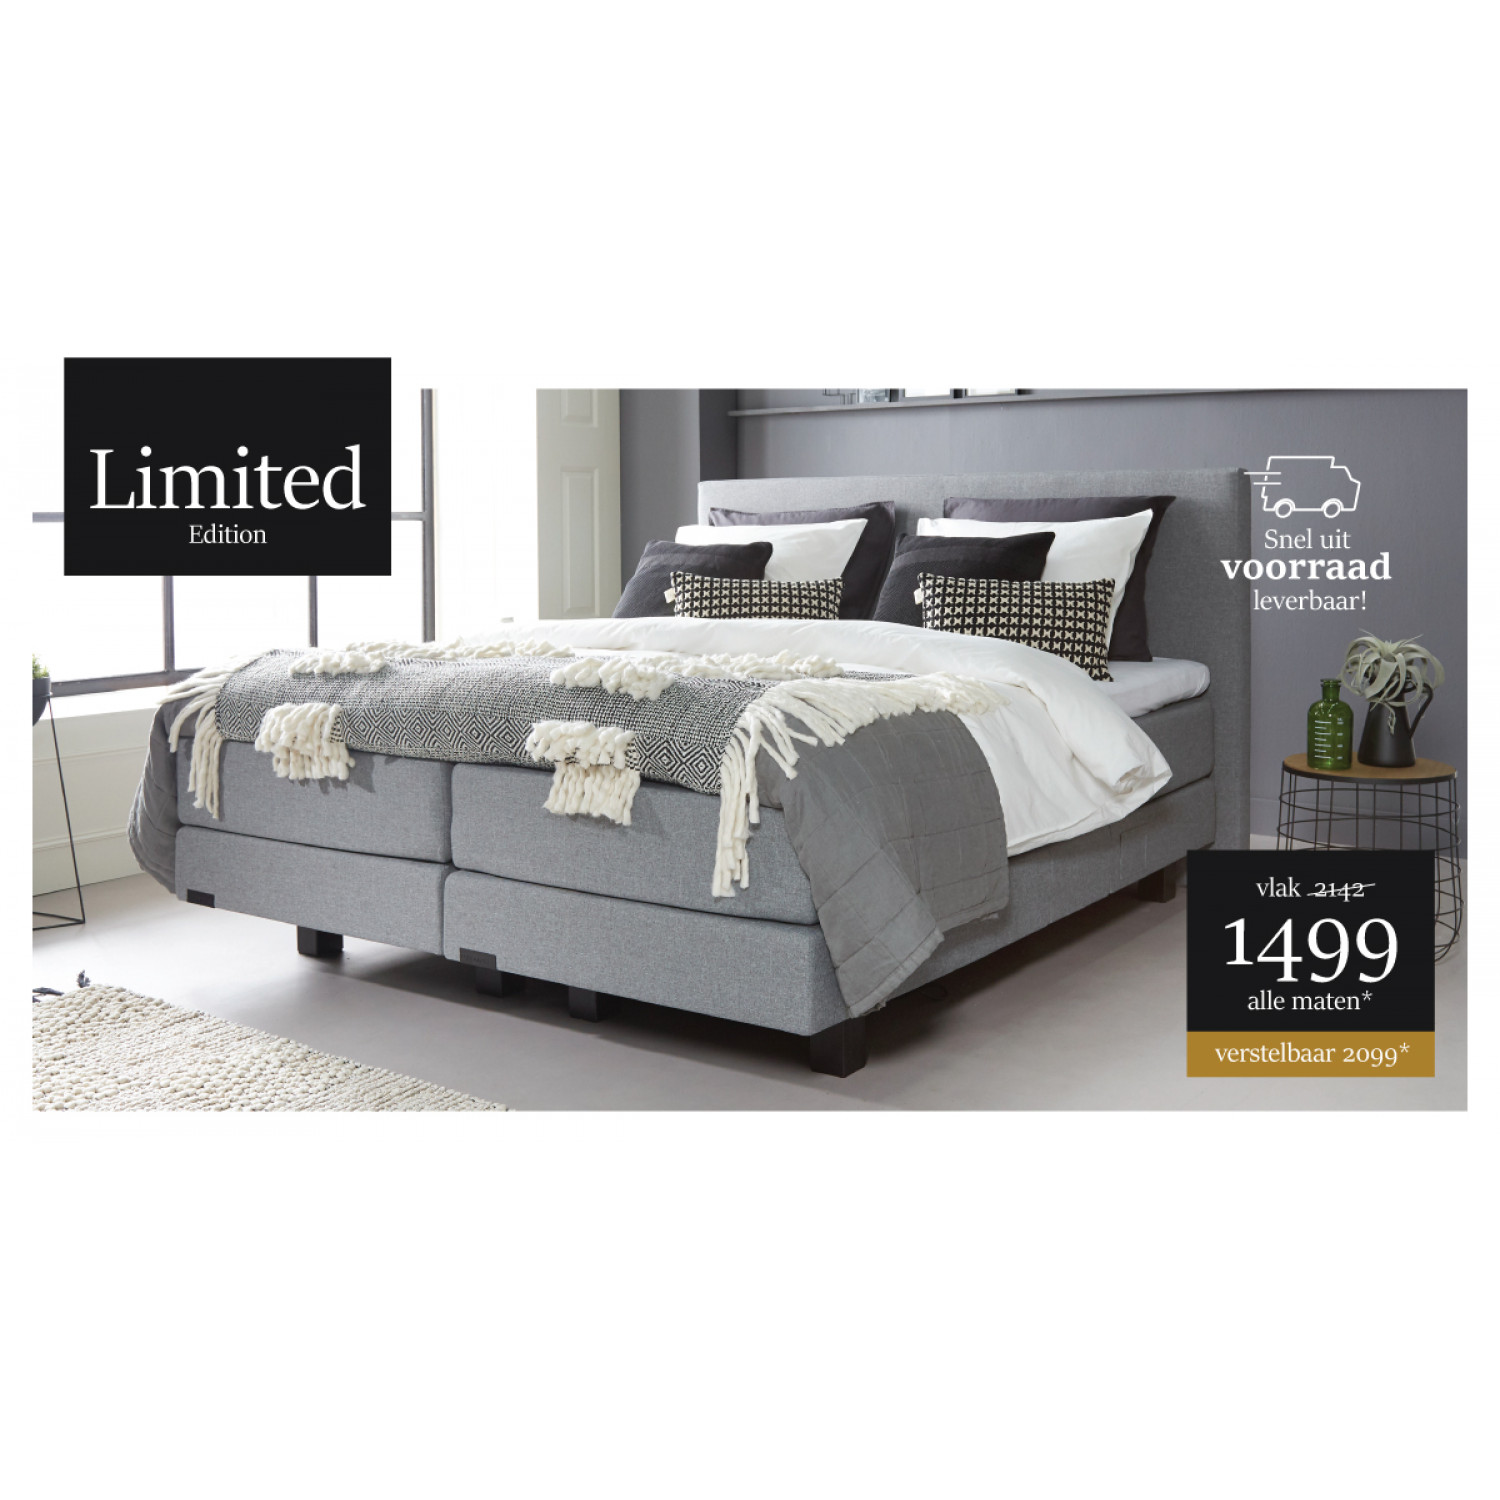 Limited Edition Boxspring